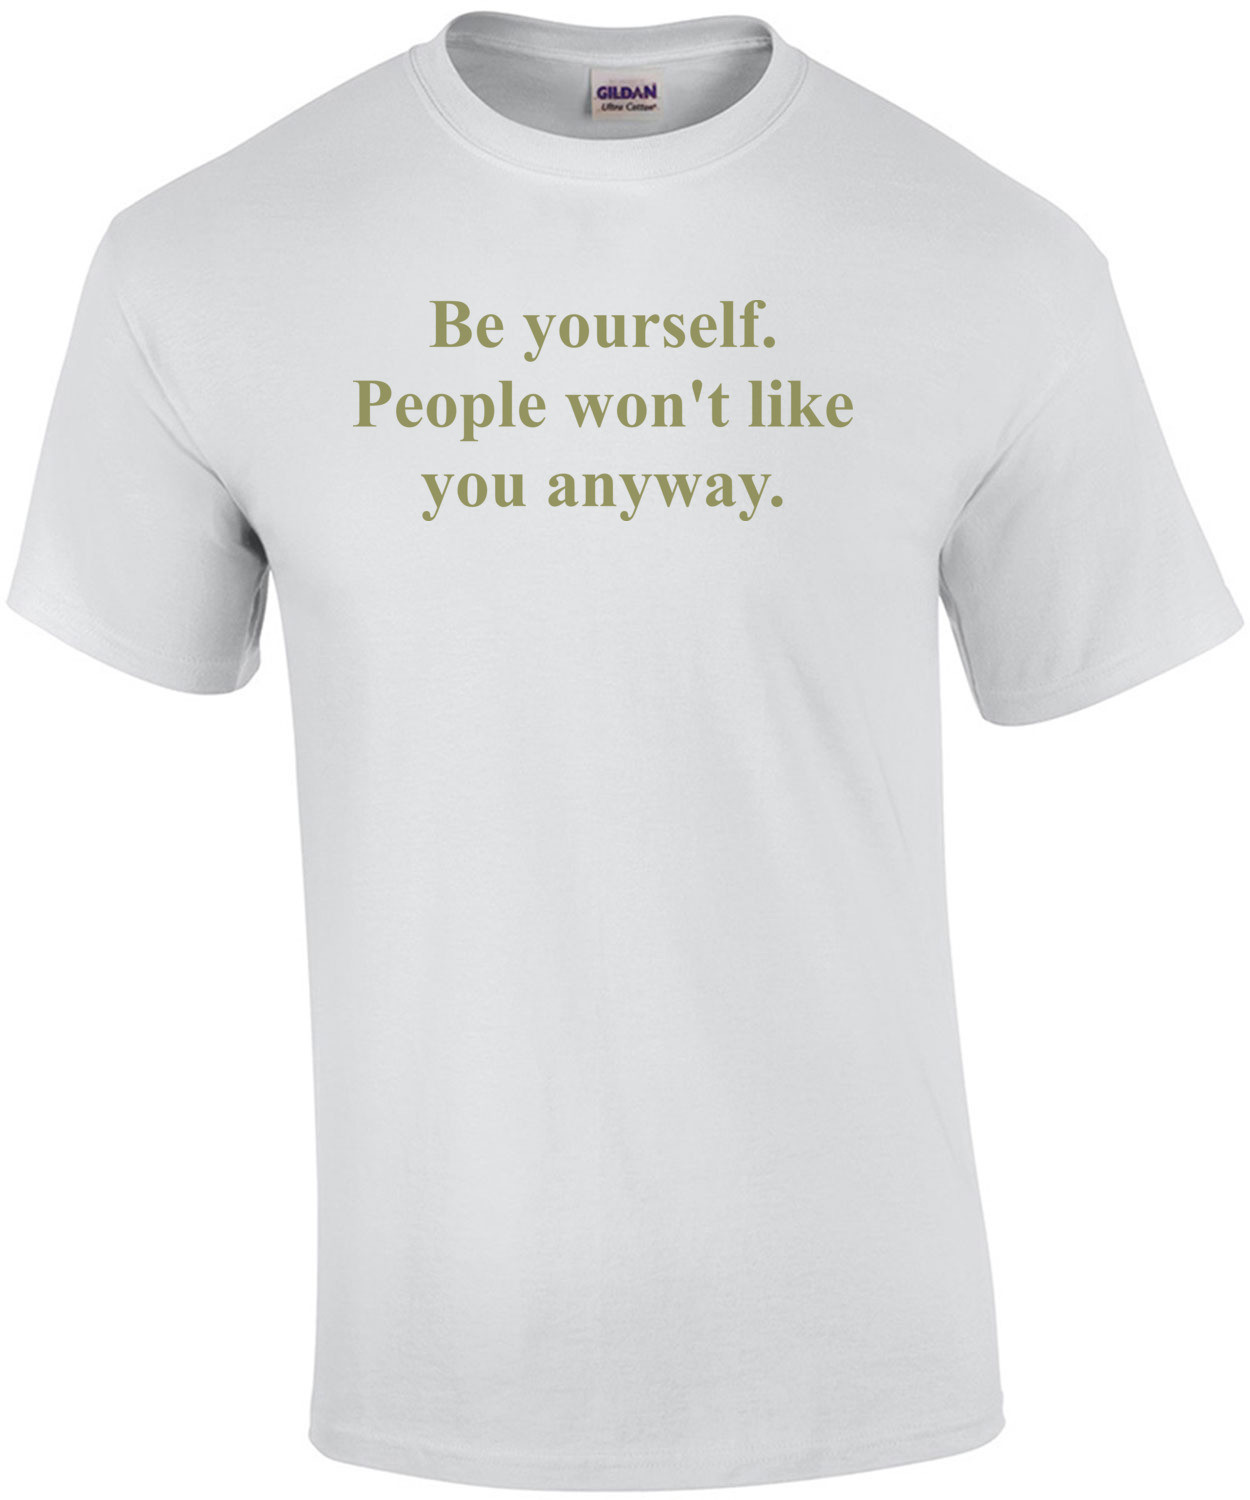 Be yourself. People won't like you anyway. Shirt